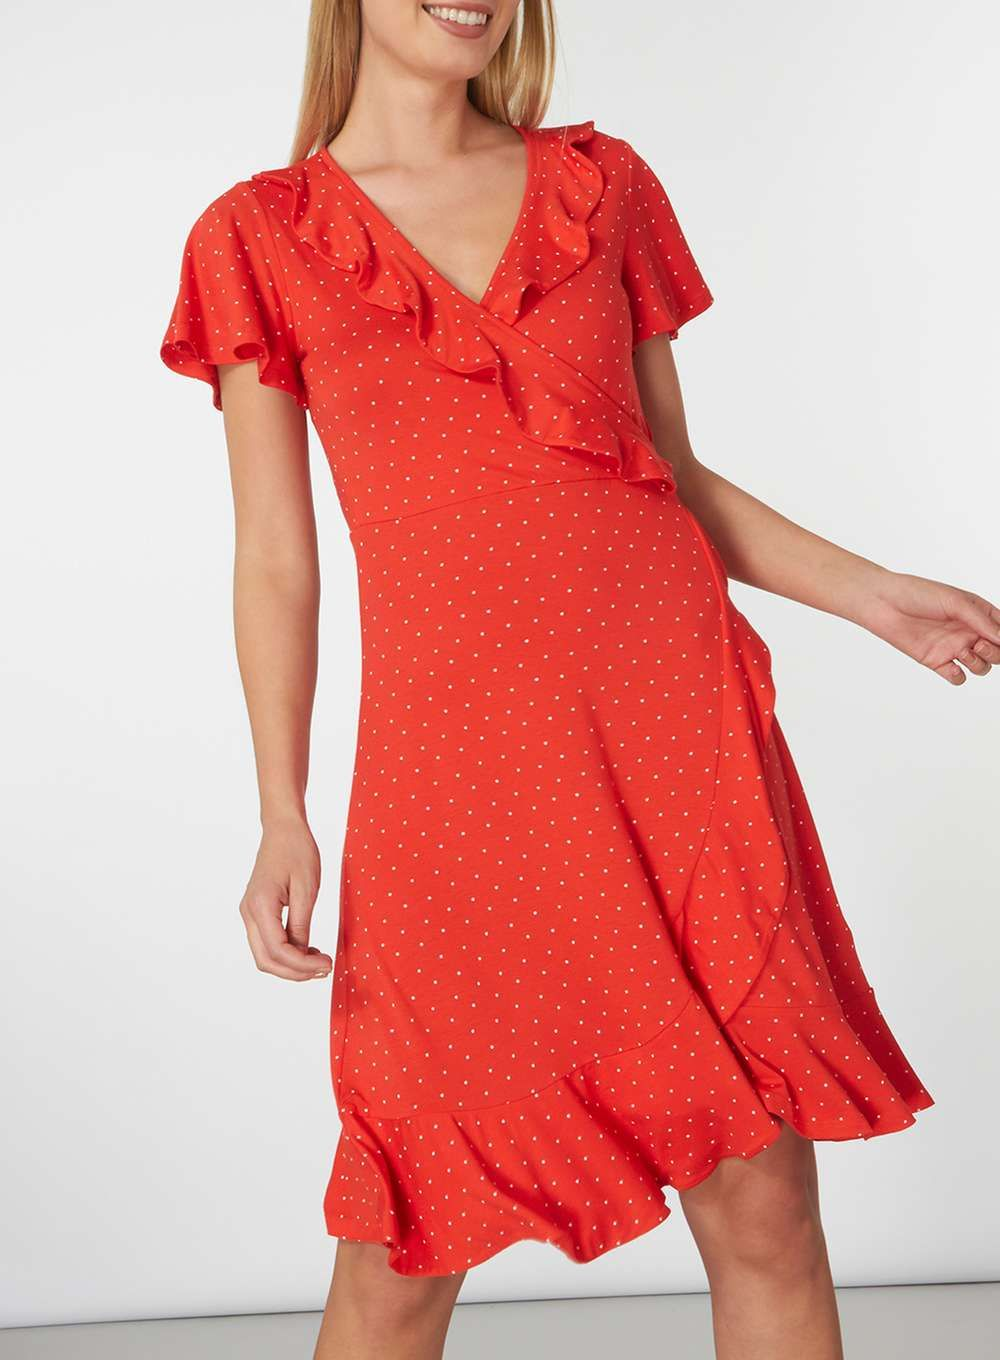 Red pin spot ruffle wrap dress august birthday buys pinterest